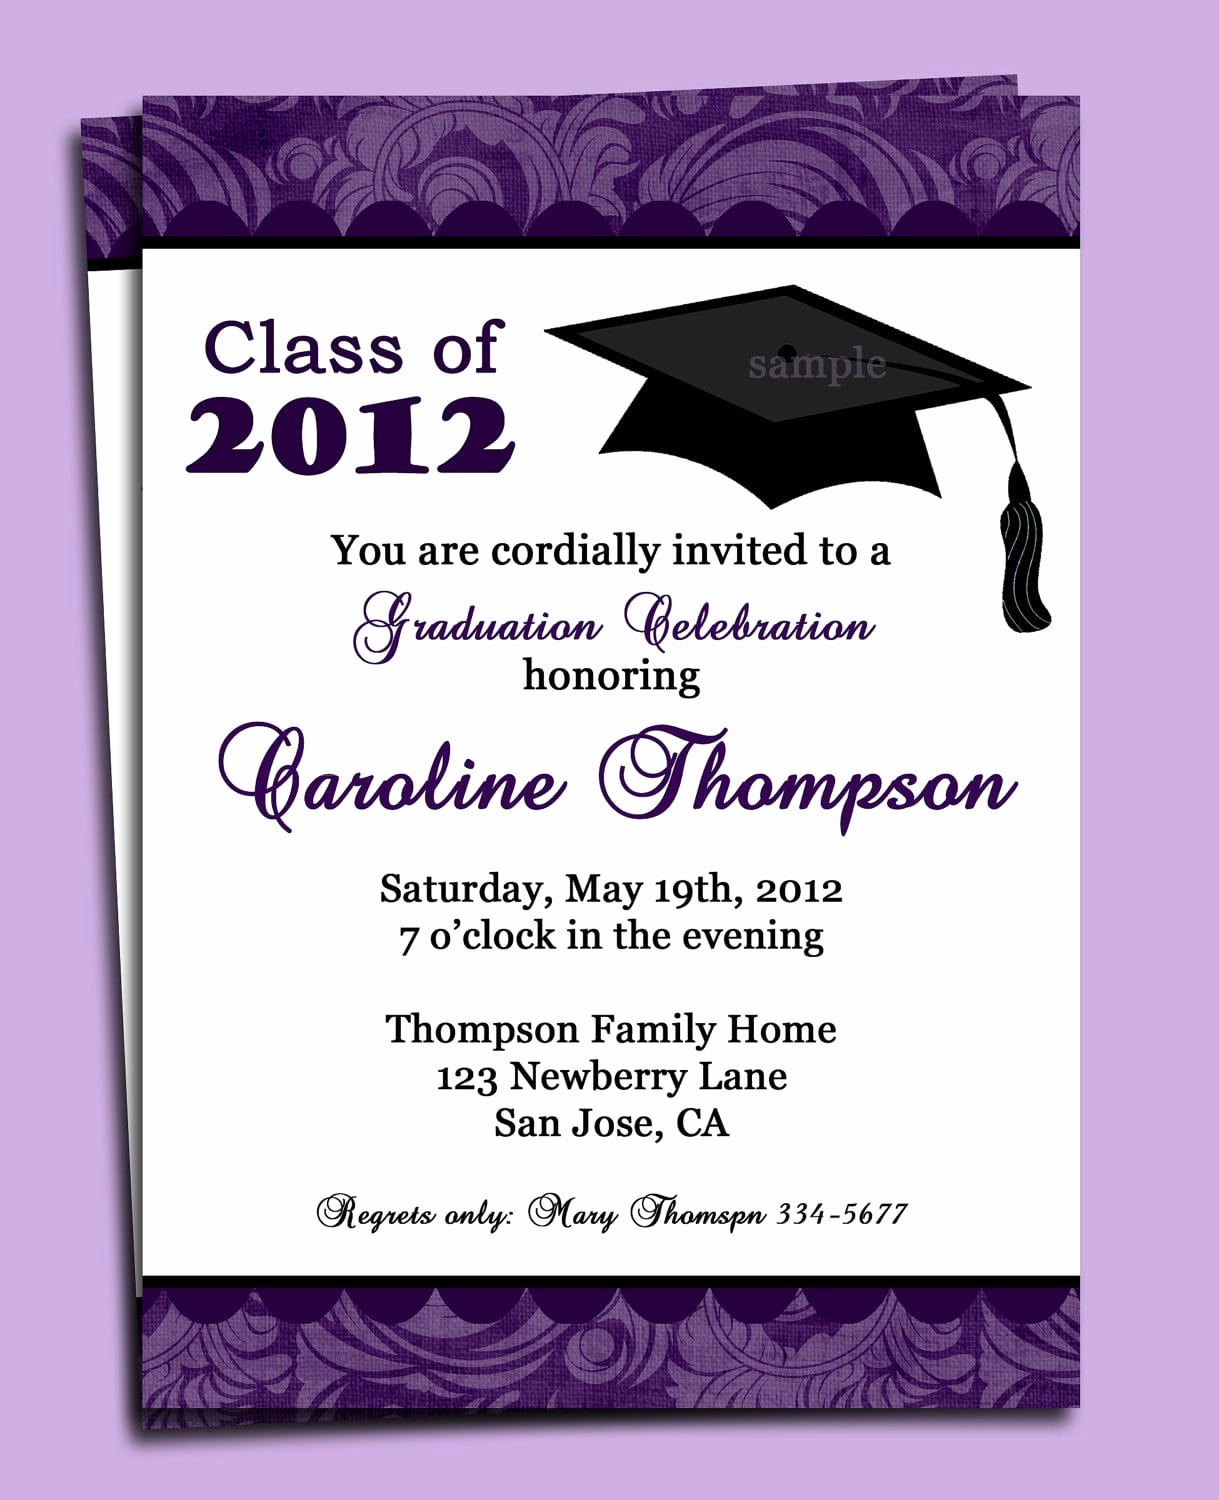 Wording for Graduation Invitation Elegant Sample Invitation for Graduation Party